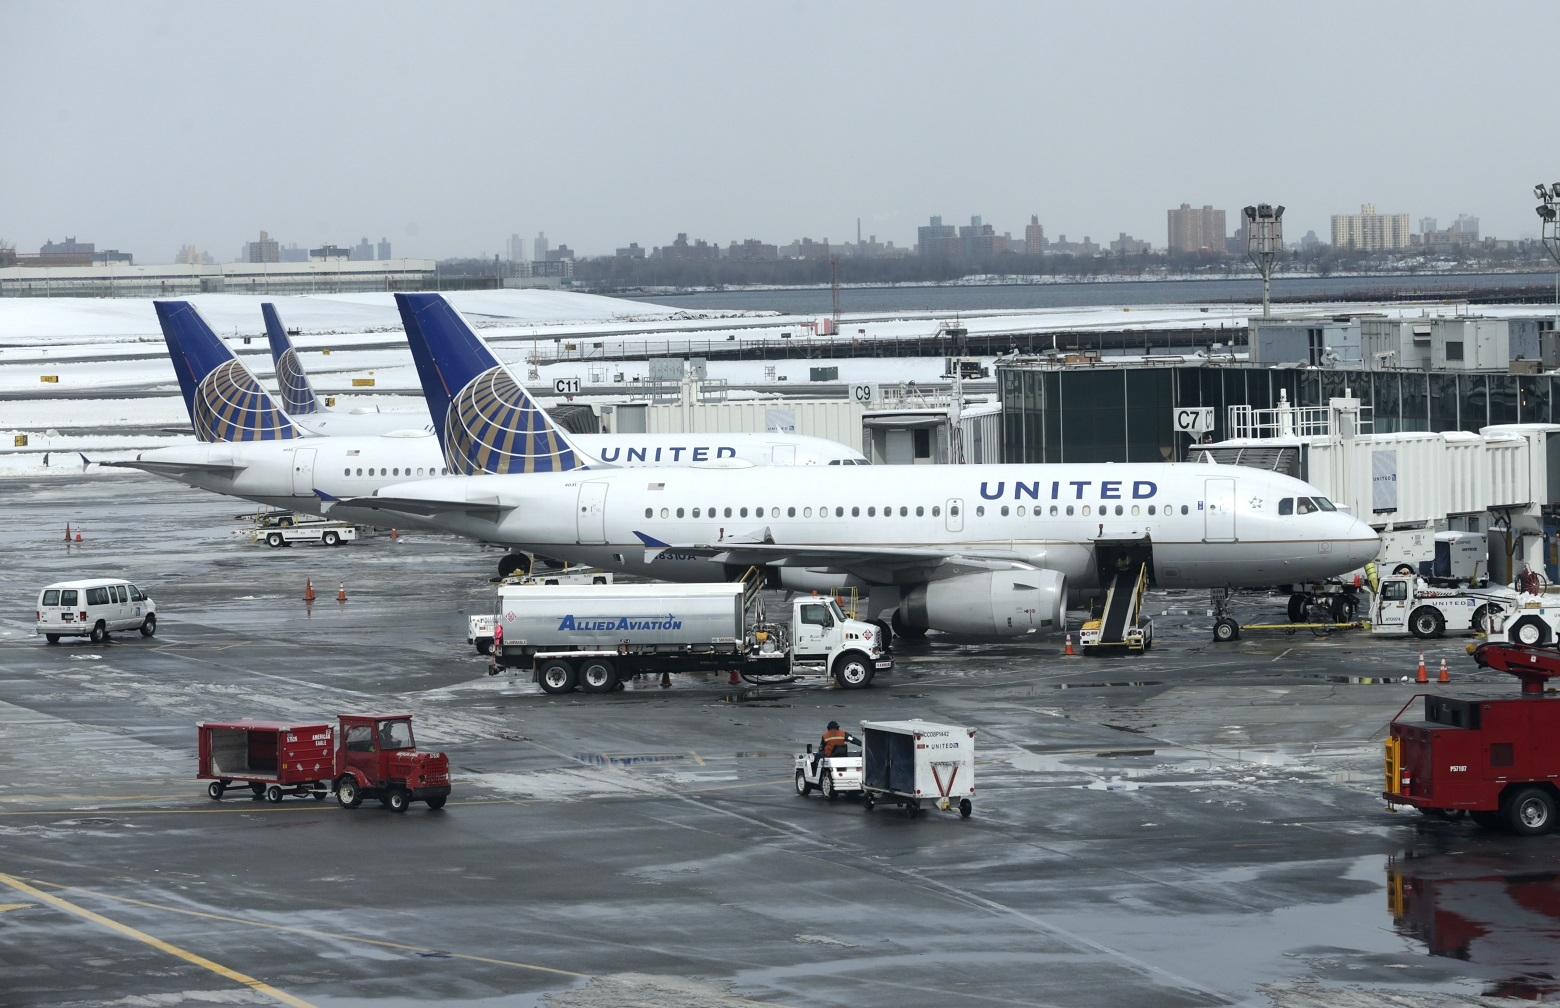 United Airlines now says controversial flight was not overbooked